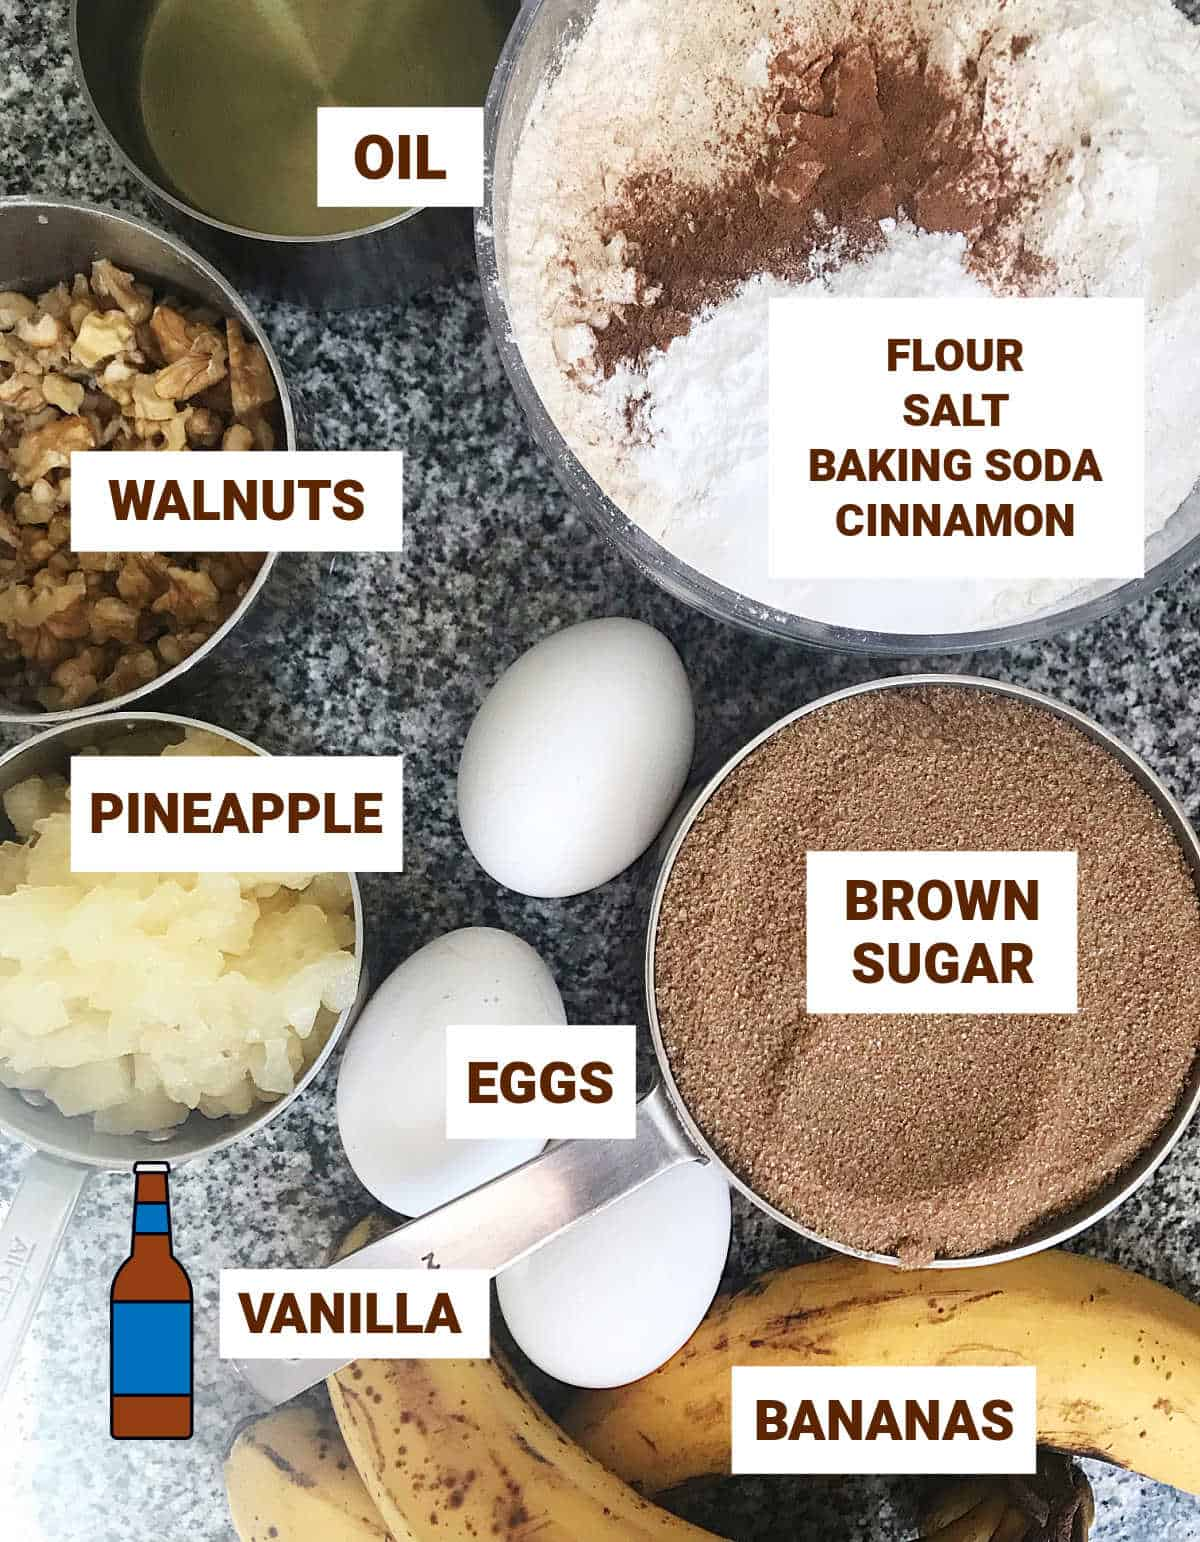 Hummingbird layer cake ingredients in bowls on grey surface including pineapple, bananas, eggs and walnuts